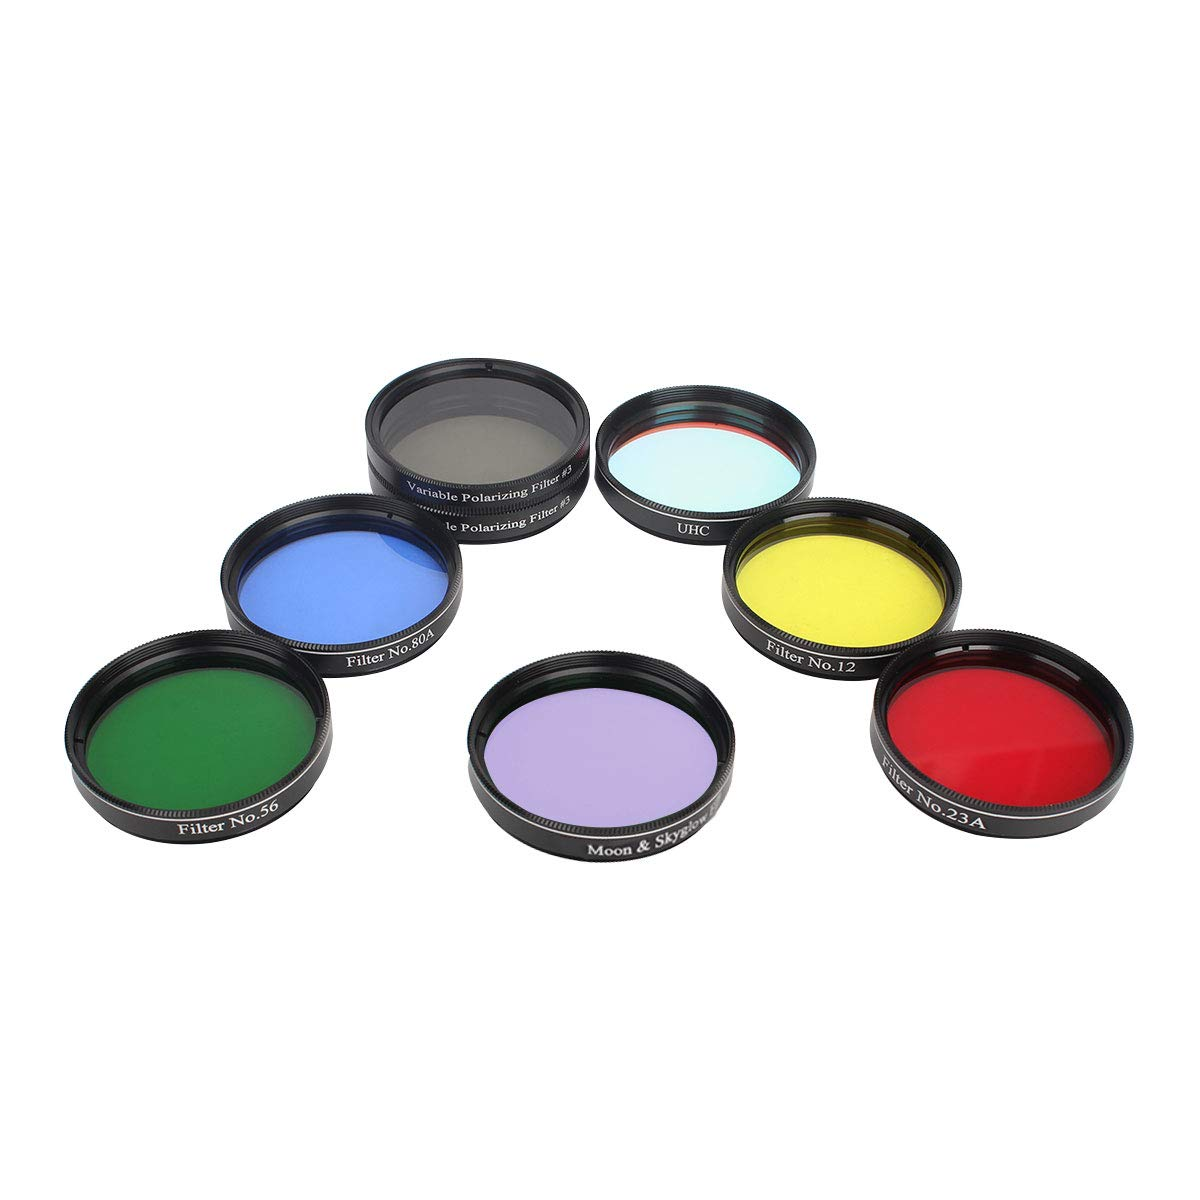 Gosky Telescope 2inch 7pcs Filters Set- 4 Plantary Color Filter, Moon Skyglow Filter, Variable Polarizing Filter, UHC Filter for 2inch Telescope Eyepieces by Gosky